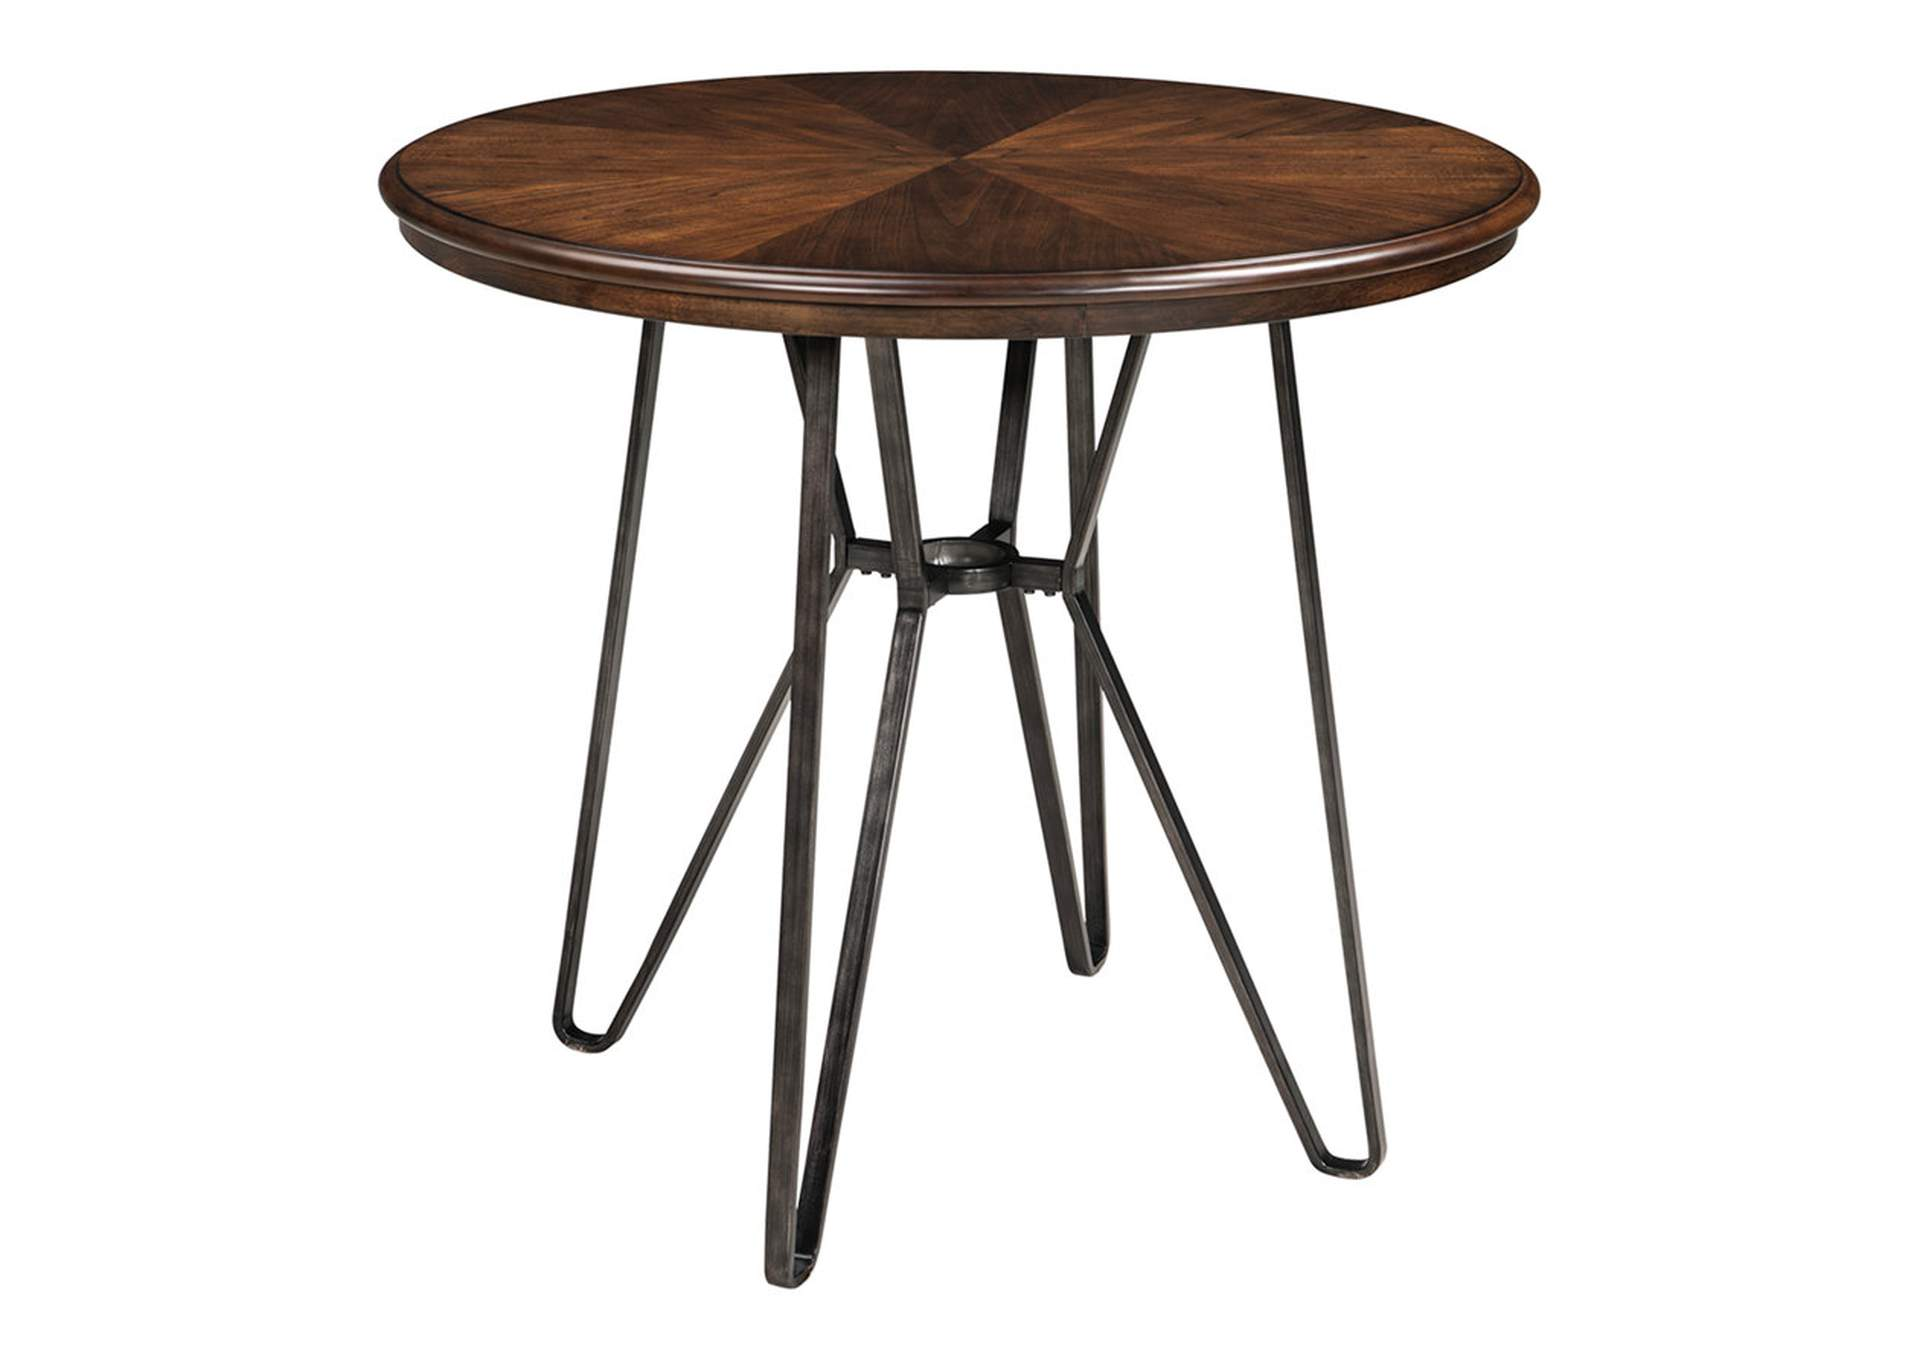 Centiar Two-Tone Brown Round Dining Room Counter Table,Signature Design By Ashley